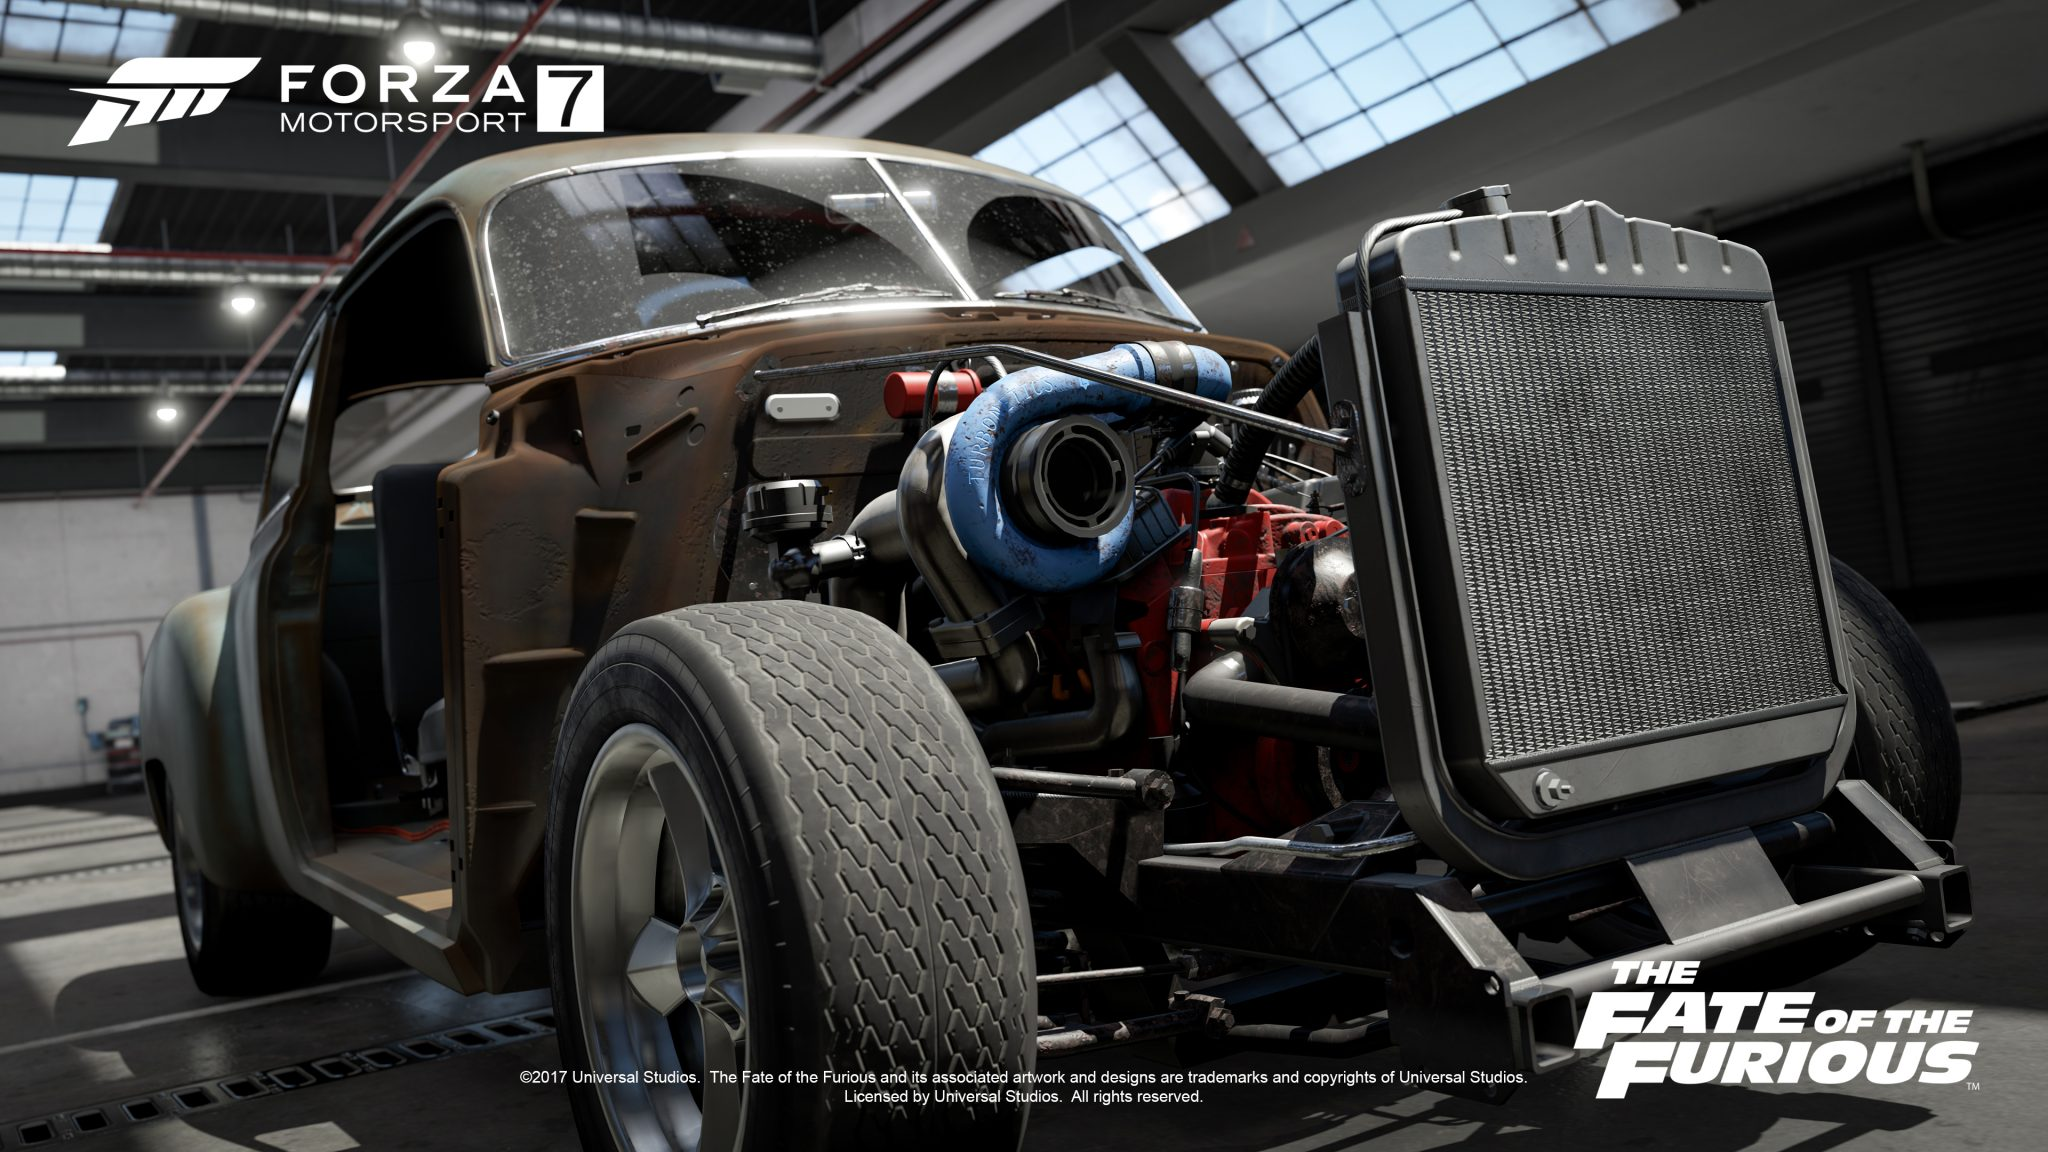 Forza Motorsport 7 The Fate Of The Furious Day One Car Pack